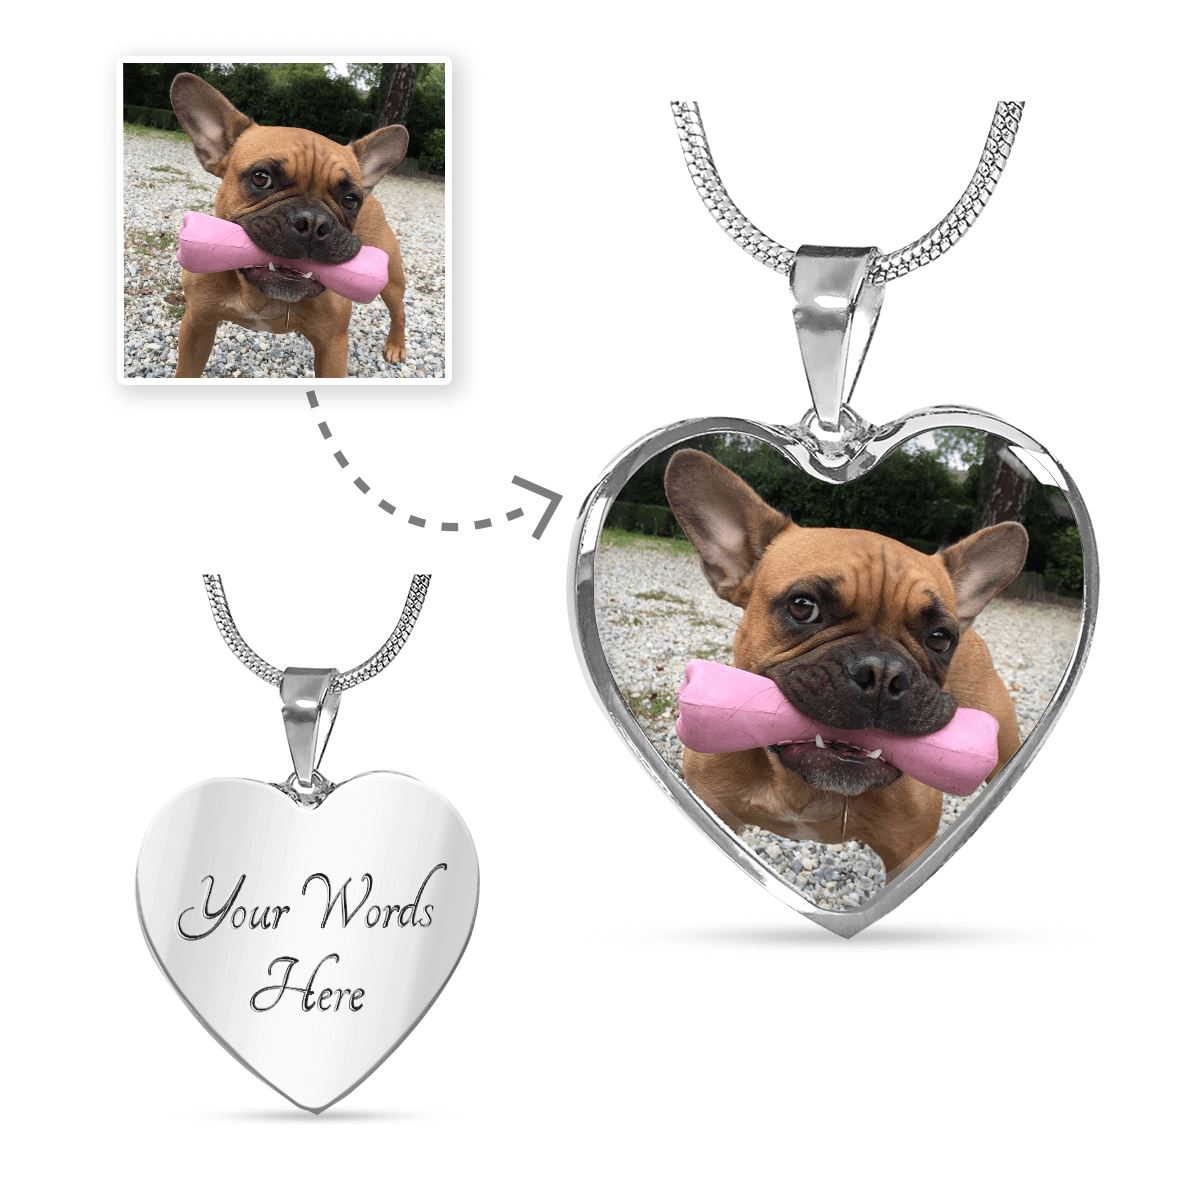 Personalized Engravable Photo Heart Necklace